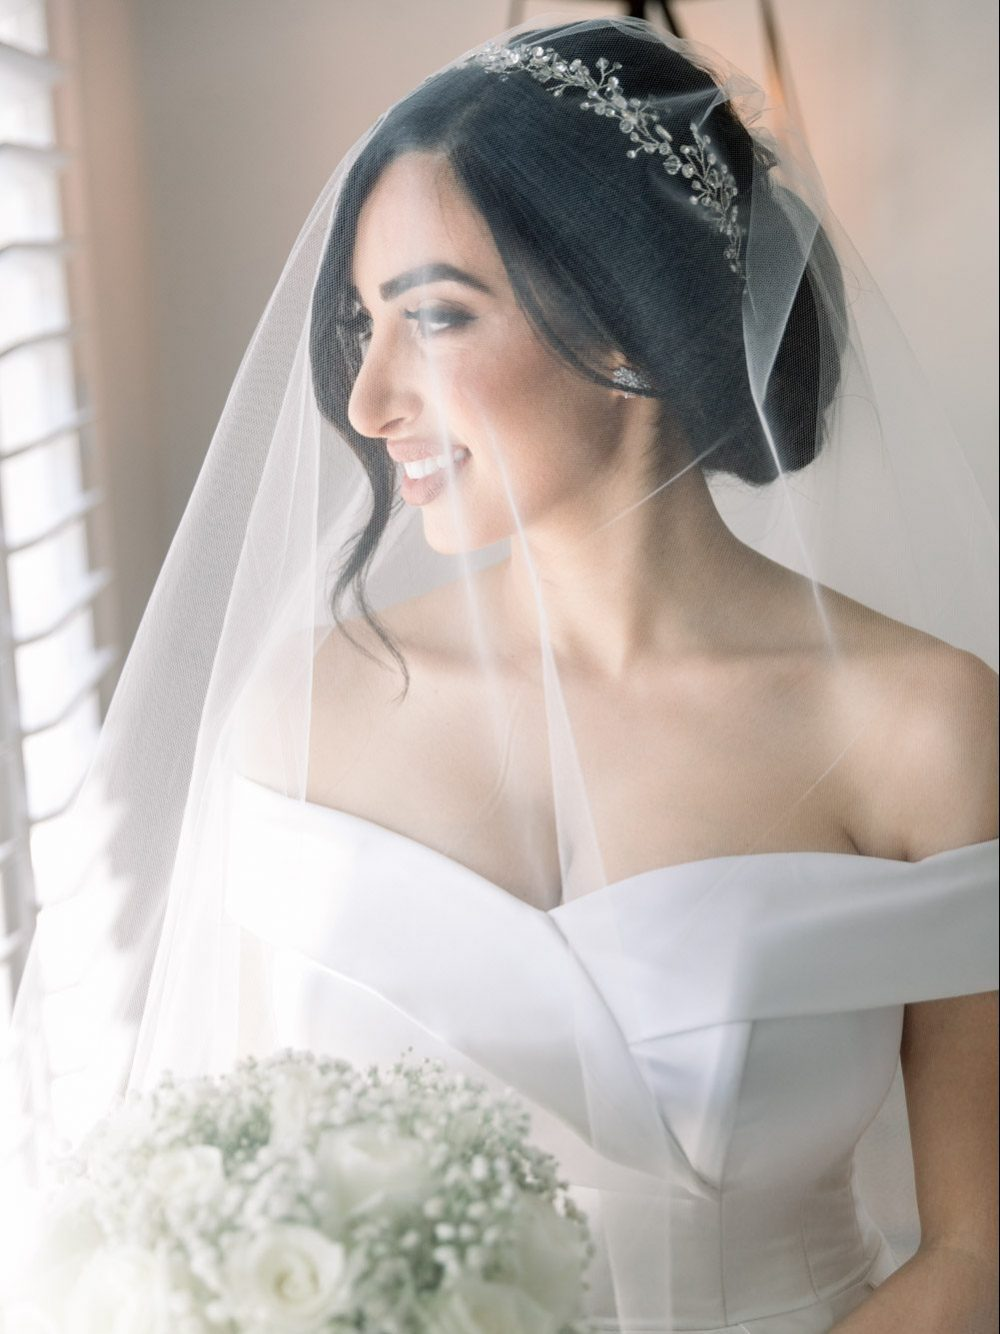 Photos of bride